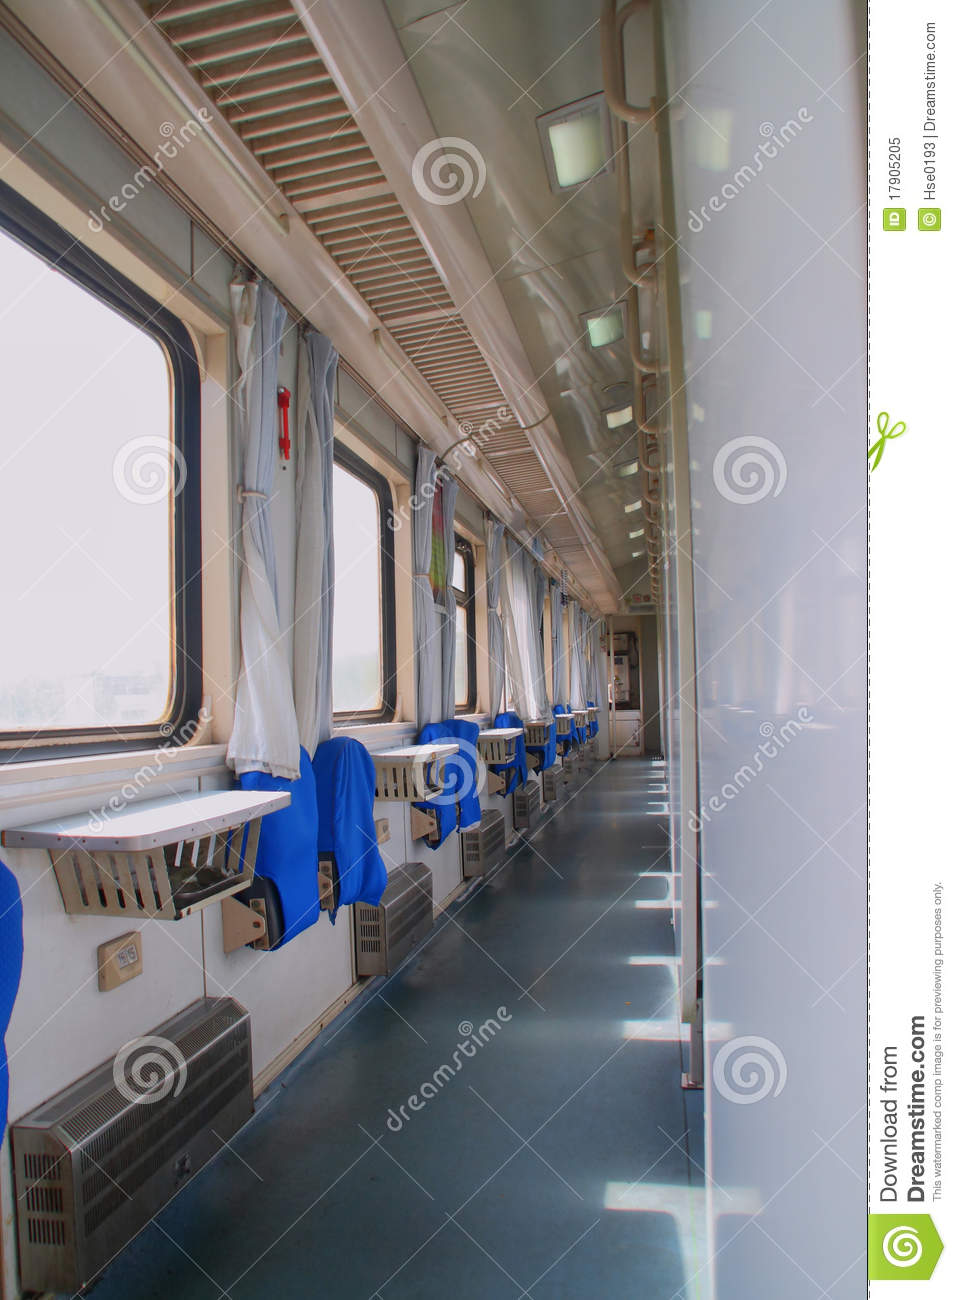 sleeping car of the passenger train stock image image of transportation sleeper 17905205. Black Bedroom Furniture Sets. Home Design Ideas